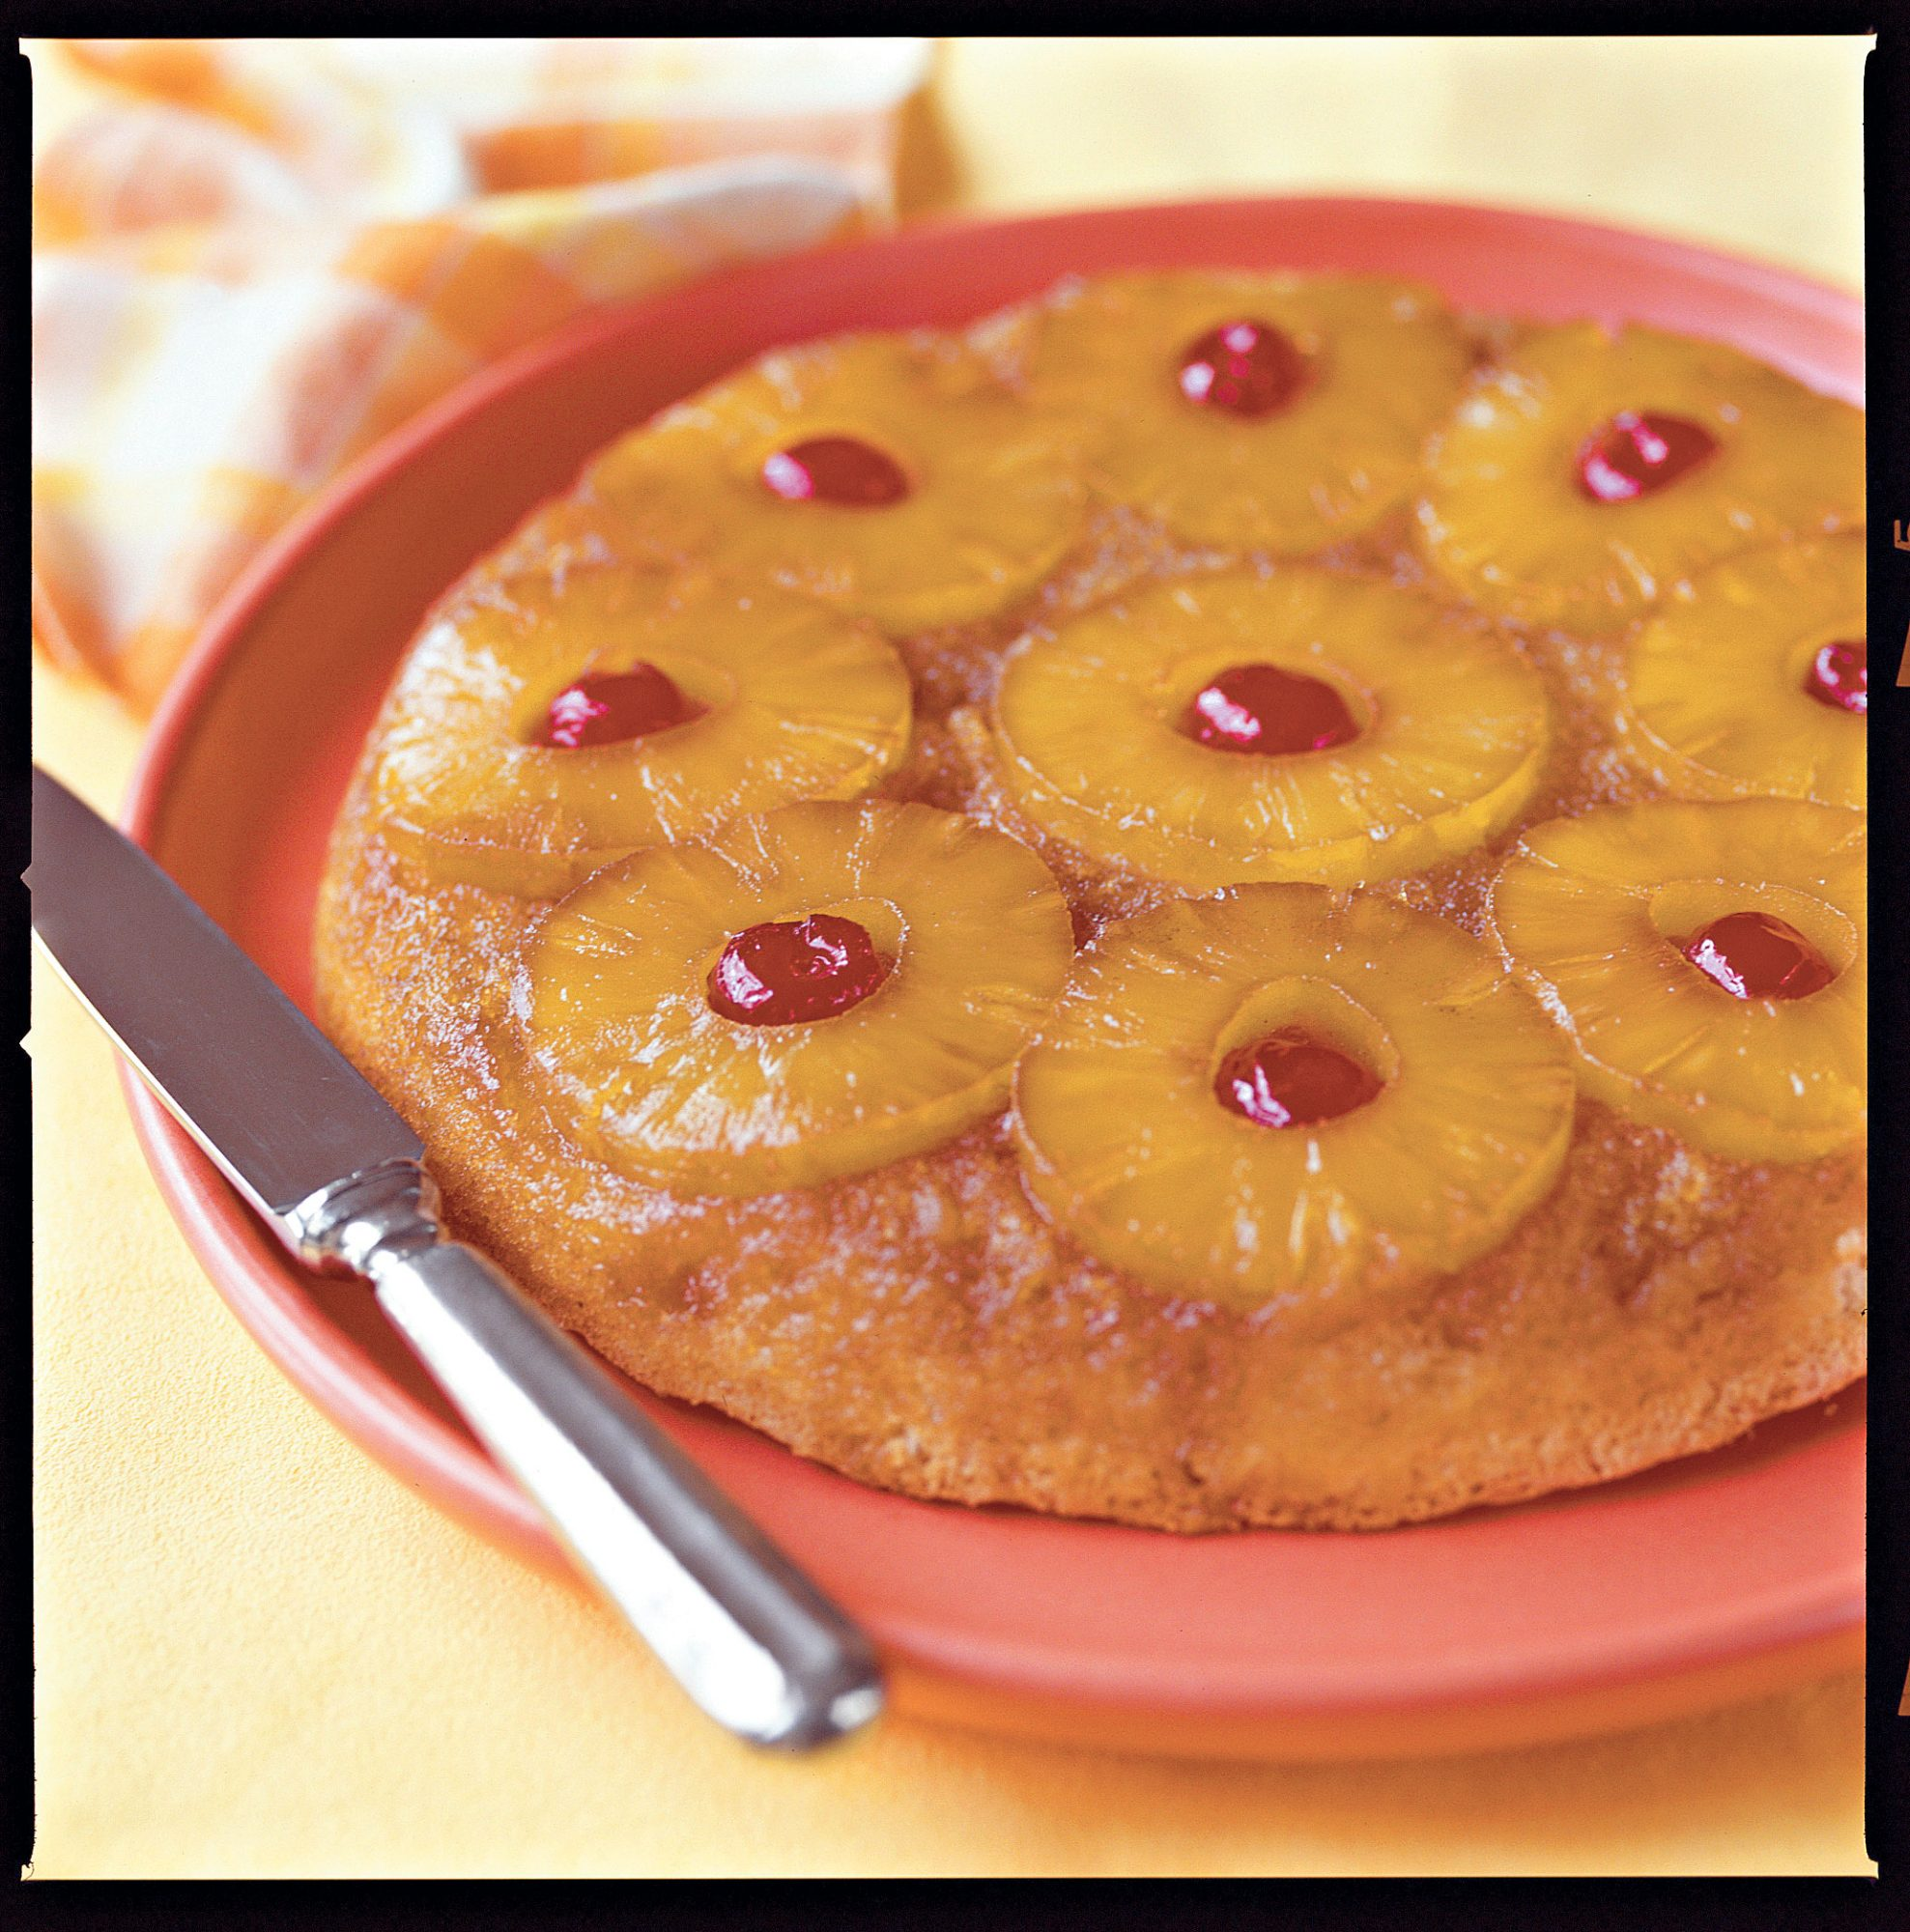 Southern Style Pineapple Upside Down Cake Recipe